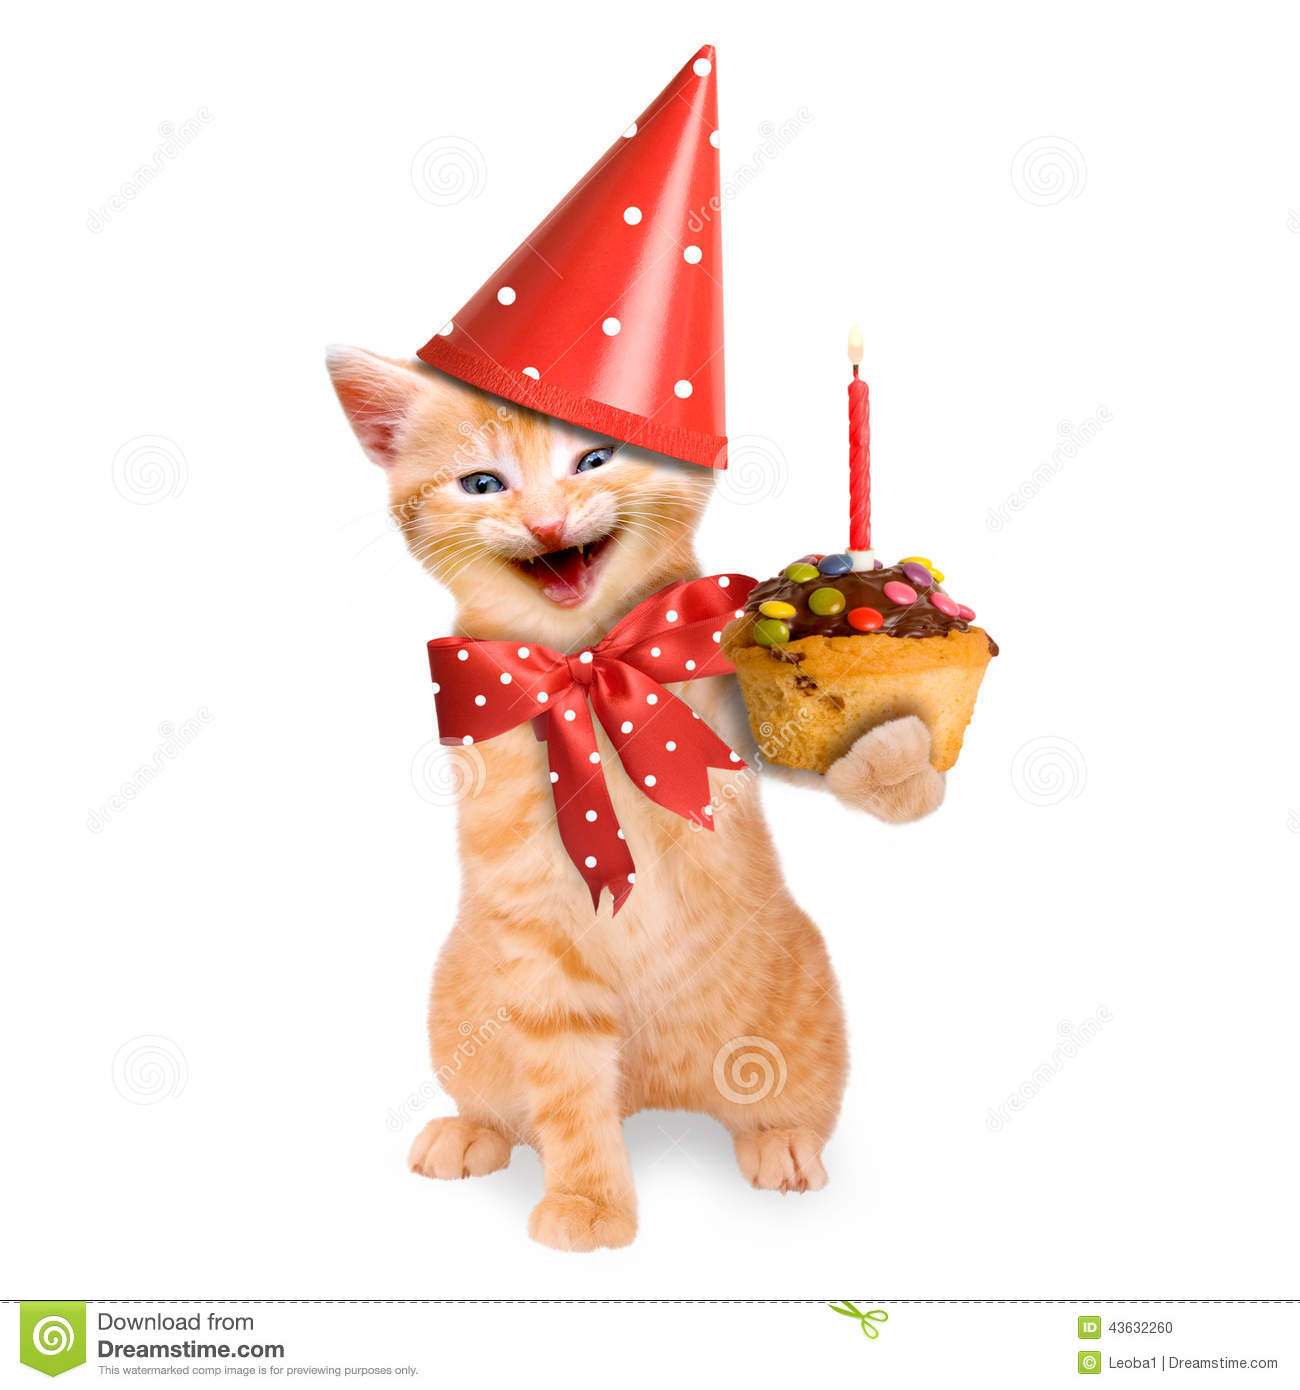 Happy Birthday Cat And Dog Images Free